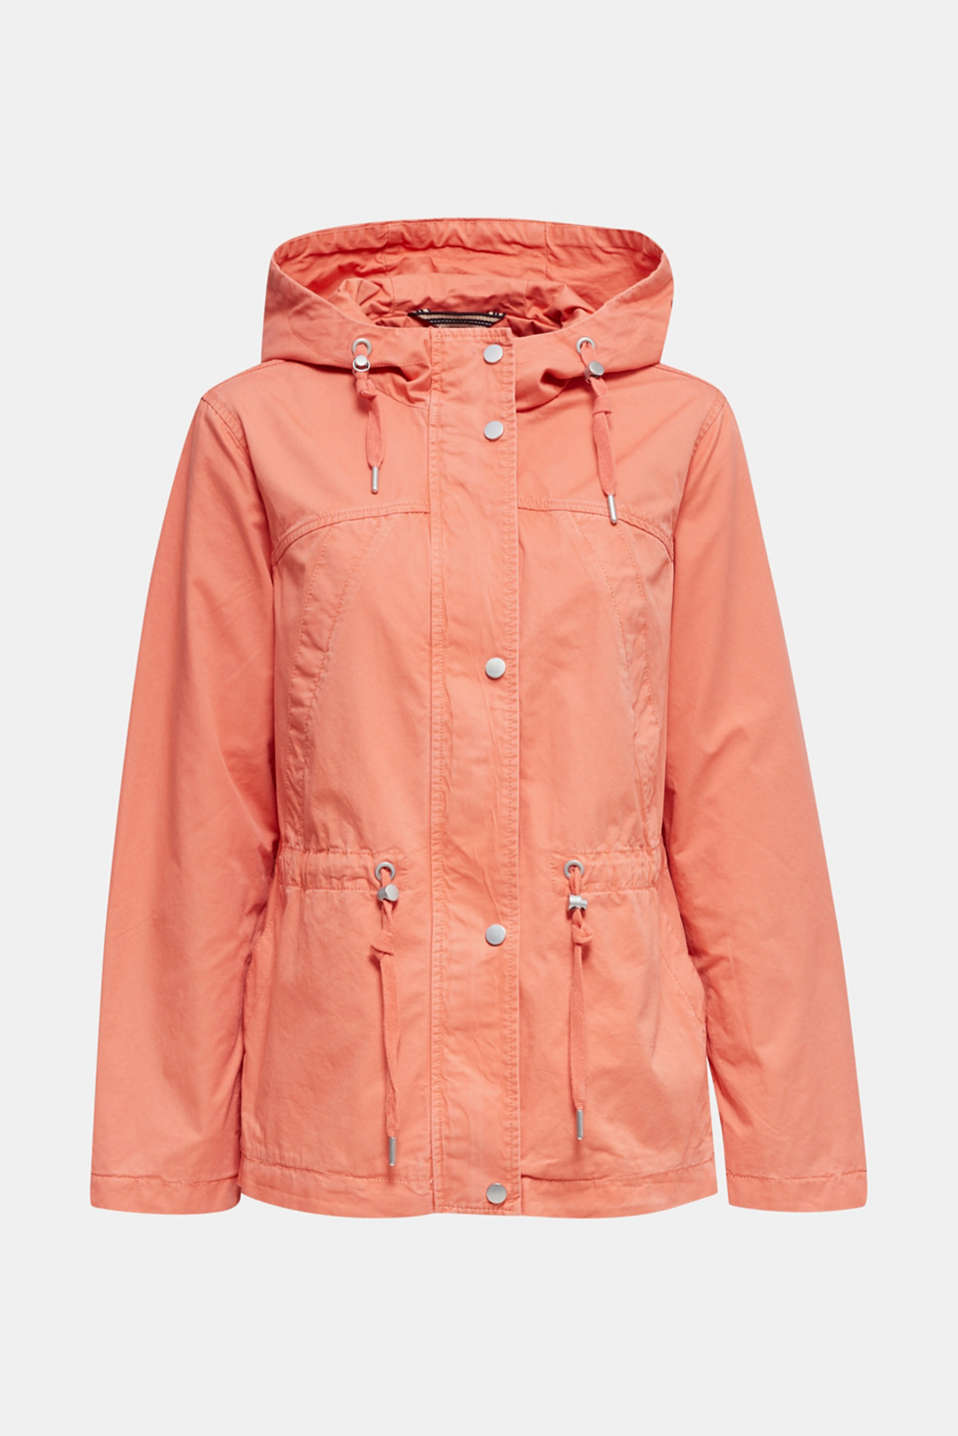 Hooded parka in a garment-washed look, ORANGE, detail image number 6